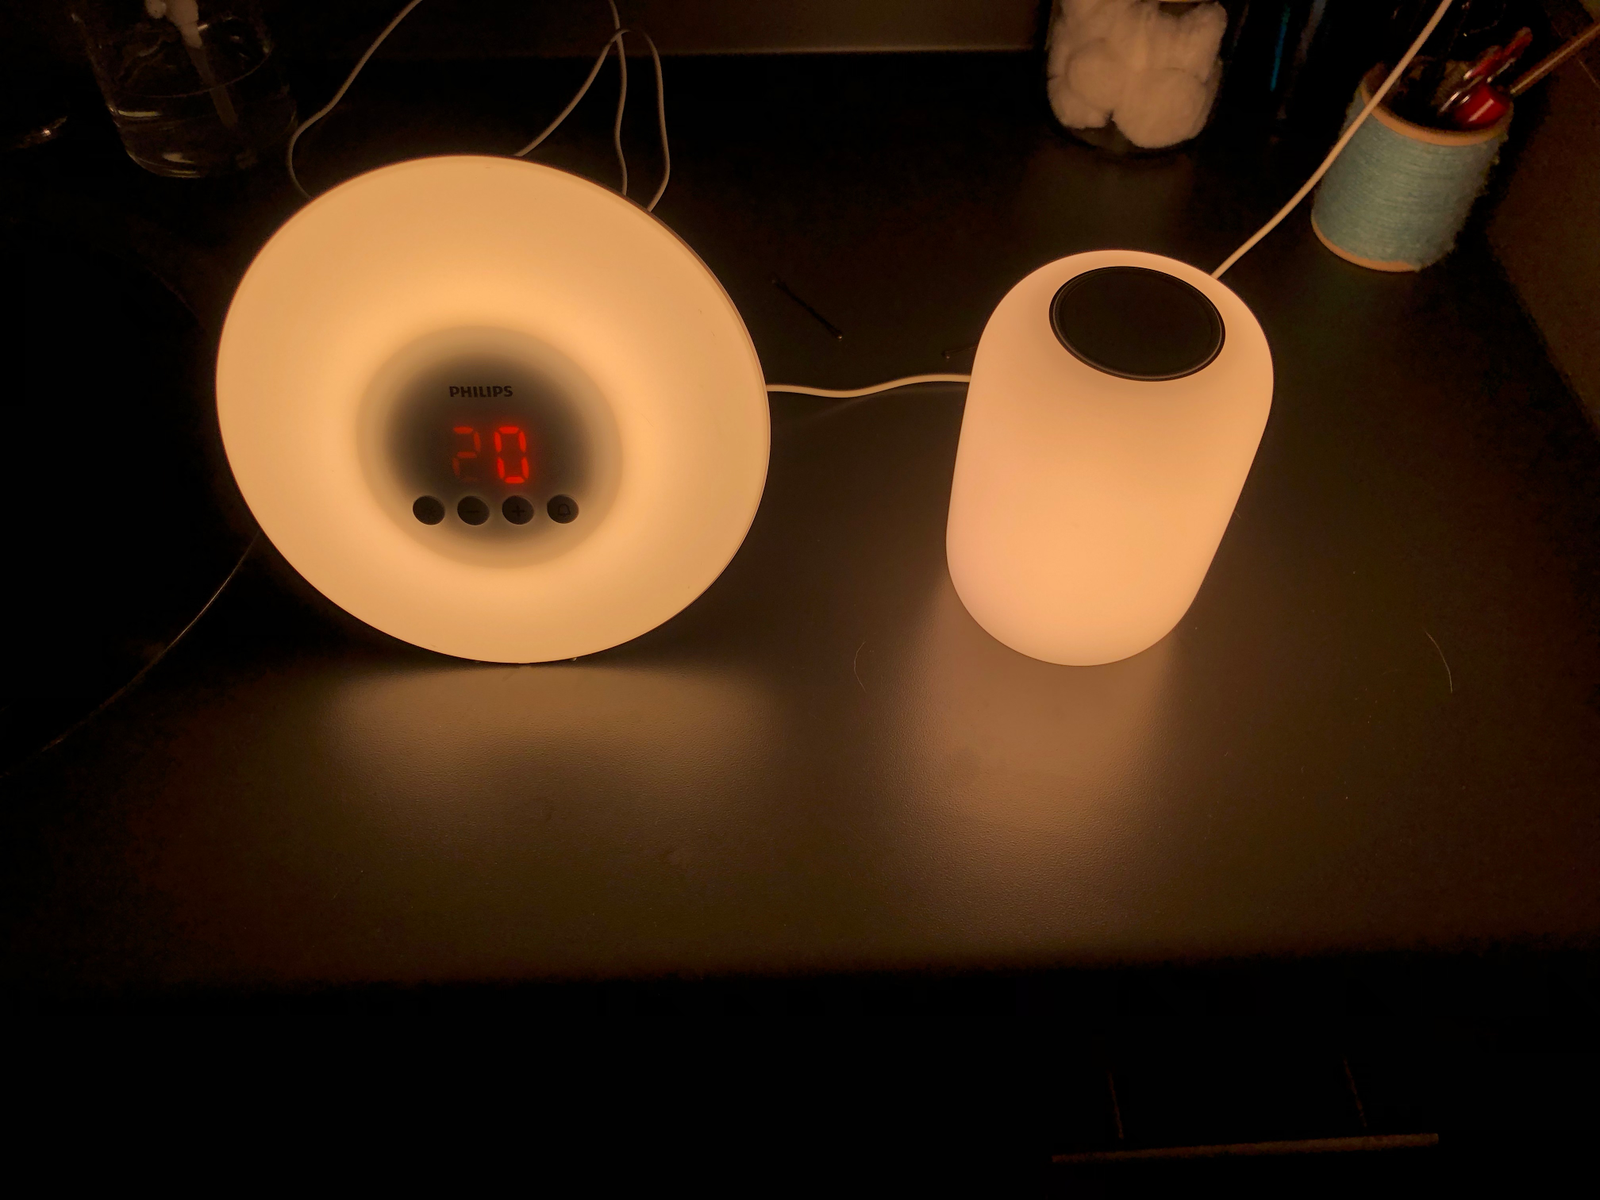 At its brightest, the Casper Glow is just about as bright as my Philips Wake-Up Light, and ever so slightly warmer.